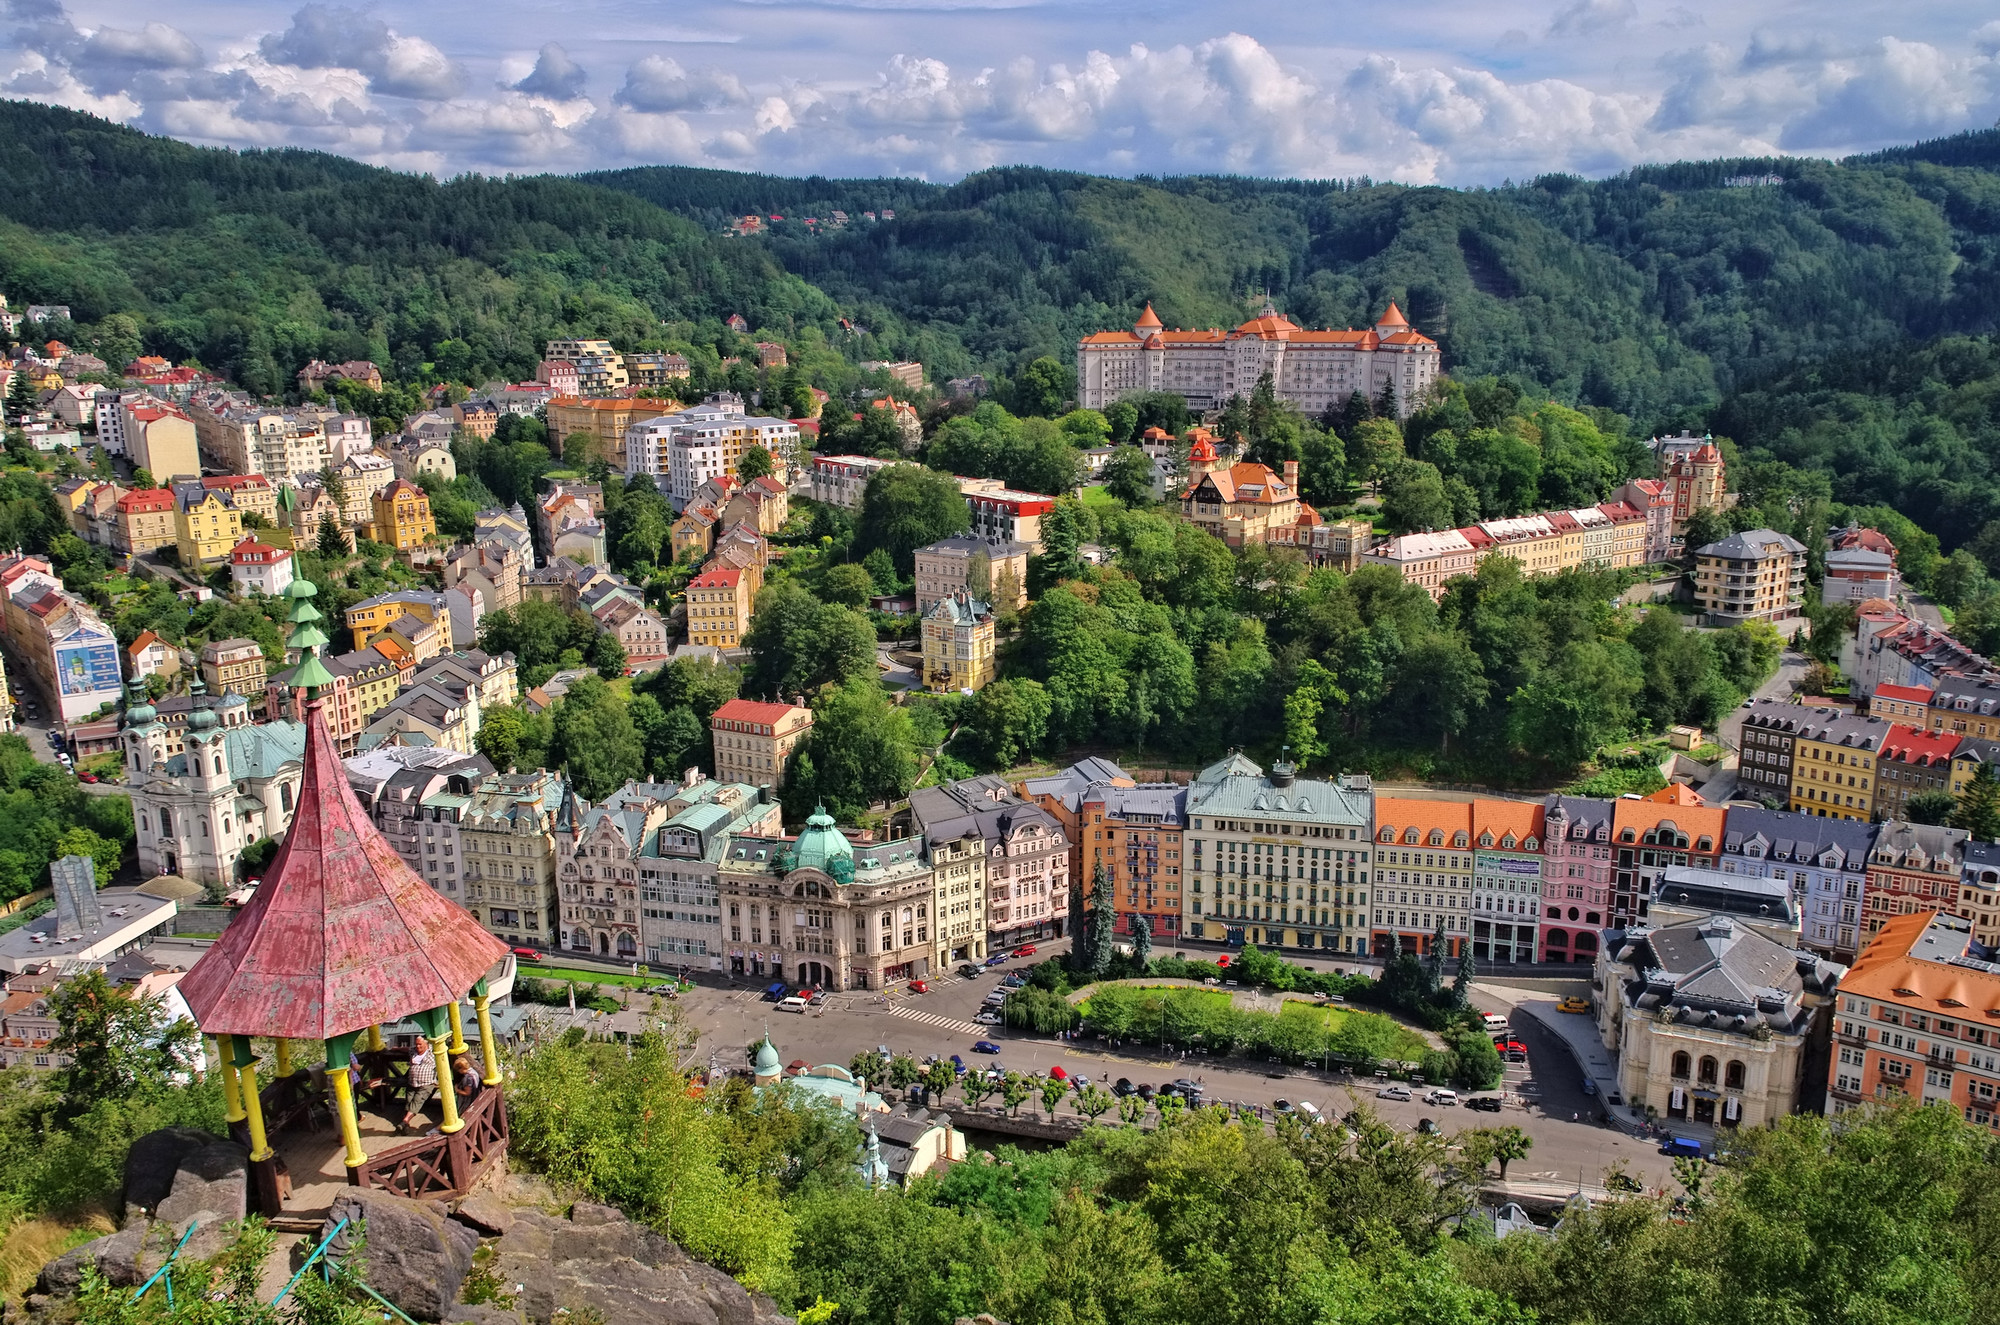 Karlovy Vary in Czechia, panorama of the tree-filled town